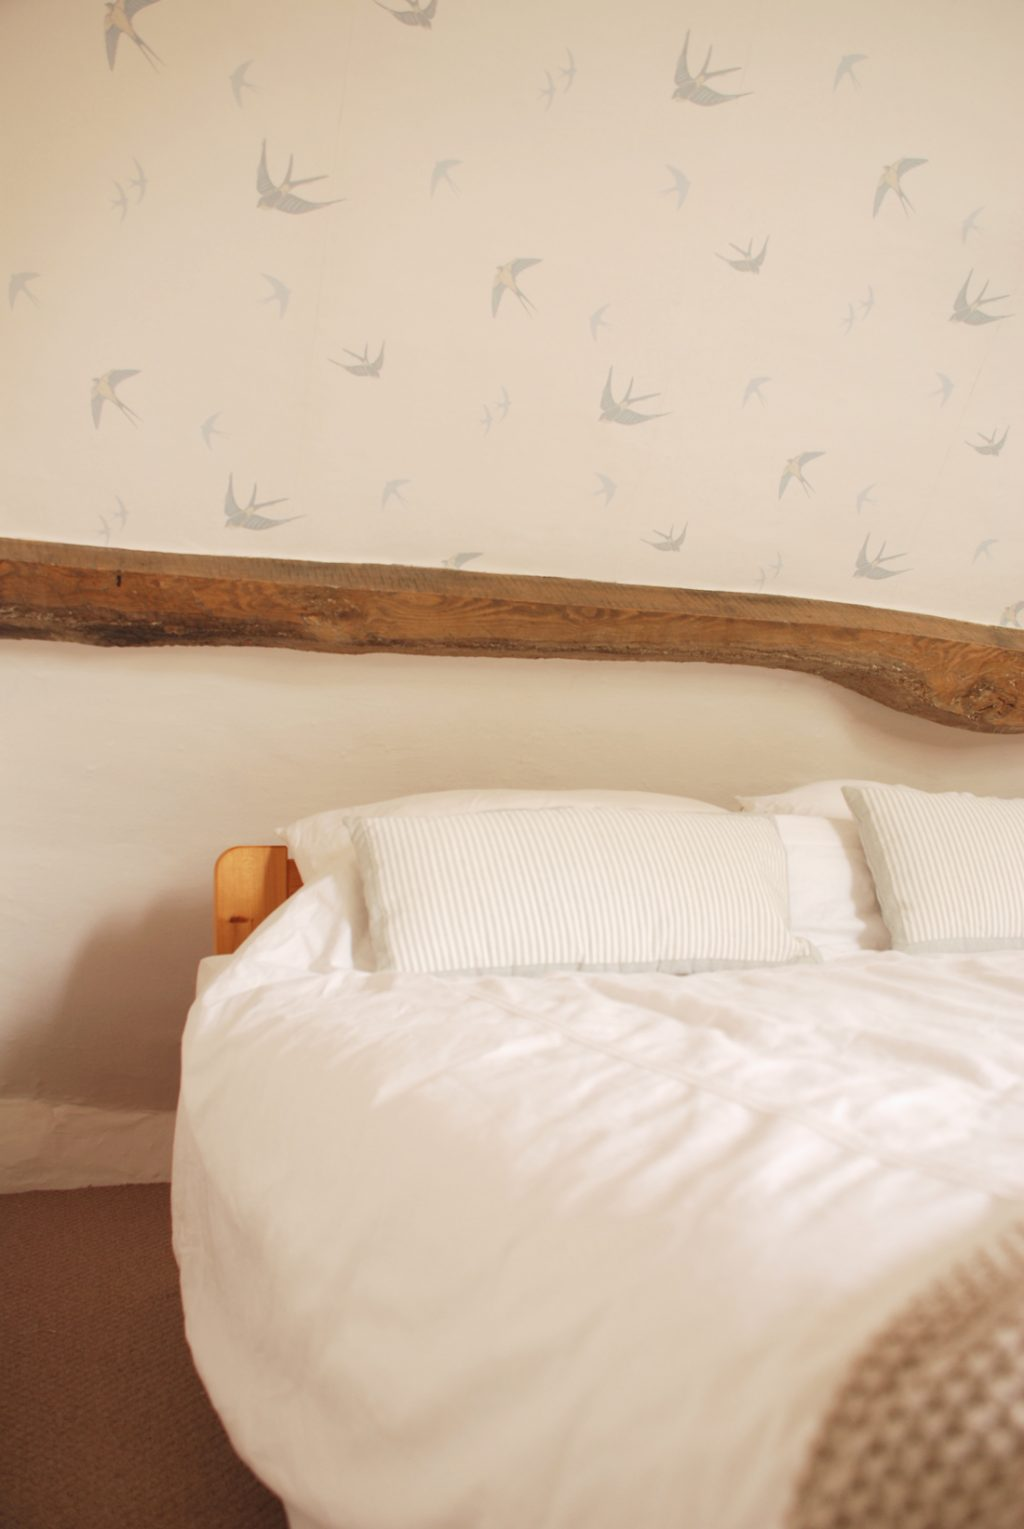 Laura Ashley Bedroom Wallpaper Our Happy Home A Bedroom Makeover Wallpapering A Ceiling The